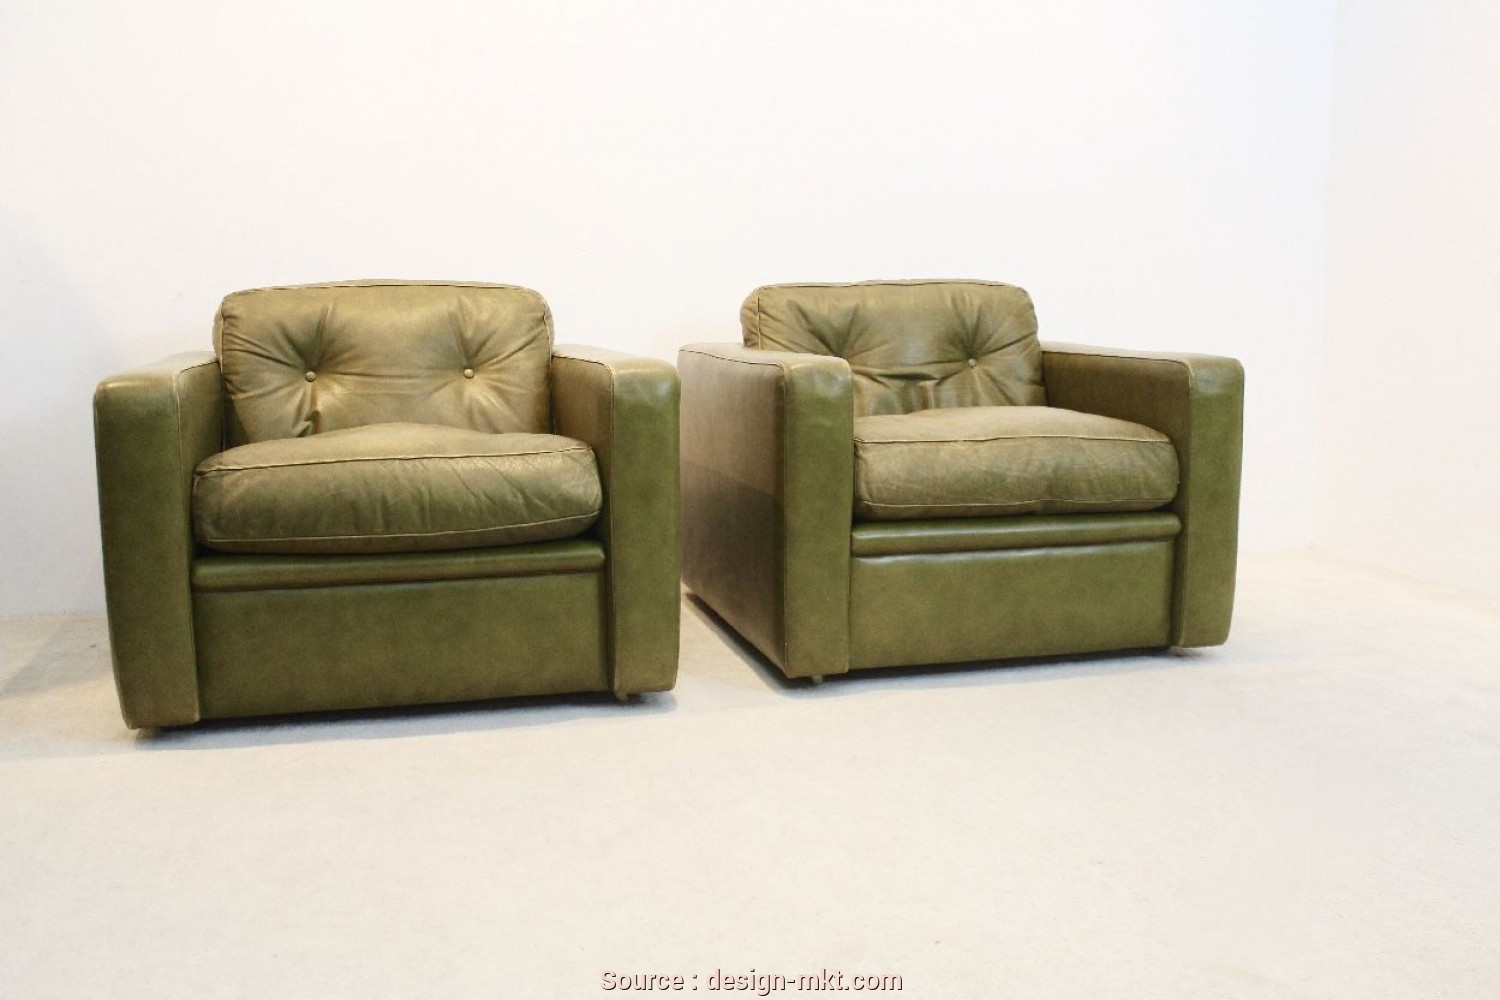 Poltrone Frau Vintage, Semplice Vintage Seating Group By Poltrona Frau In Olive Green Leather 1970